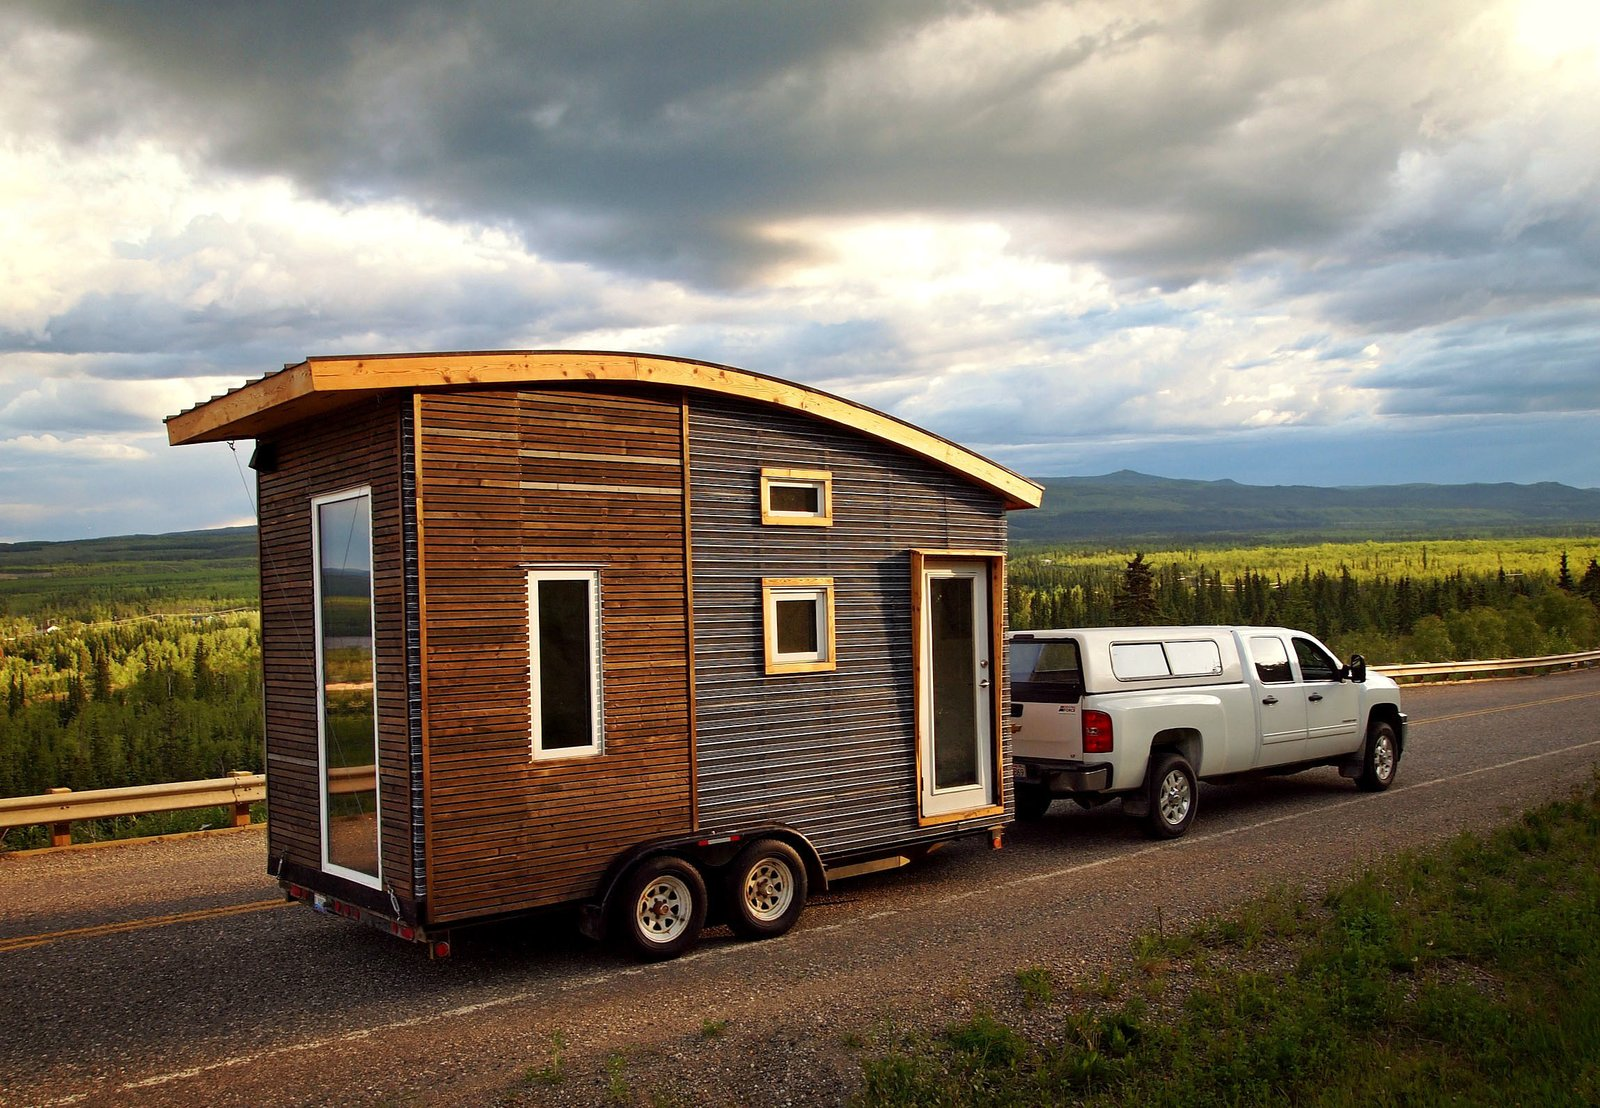 The Leaf House is a lightweight, mobile trailer that was carefully engineered to weigh less than 5,000 pounds. The designer, Laird Herbert, used a metal-mesh, open-joint rainscreen as the cladding on the front end, and spruce pine at the back. Tagged: Exterior, Curved RoofLine, Camper Building Type, Wood Siding Material, and Metal Siding Material.  Tiny Homes by Scott Saunders from A Modern Trailer is an Experiment in Small-Space Living